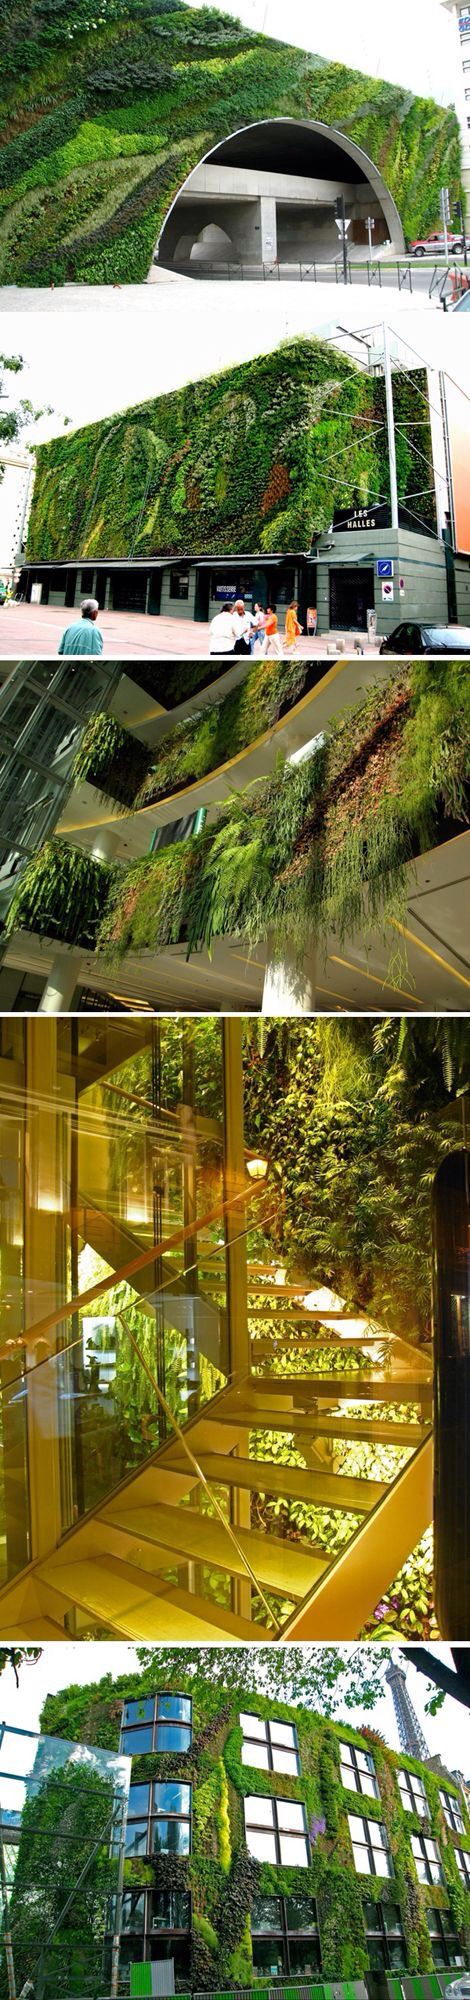 234 best Planter Walls and Green Roofs images on Pinterest | Green ...